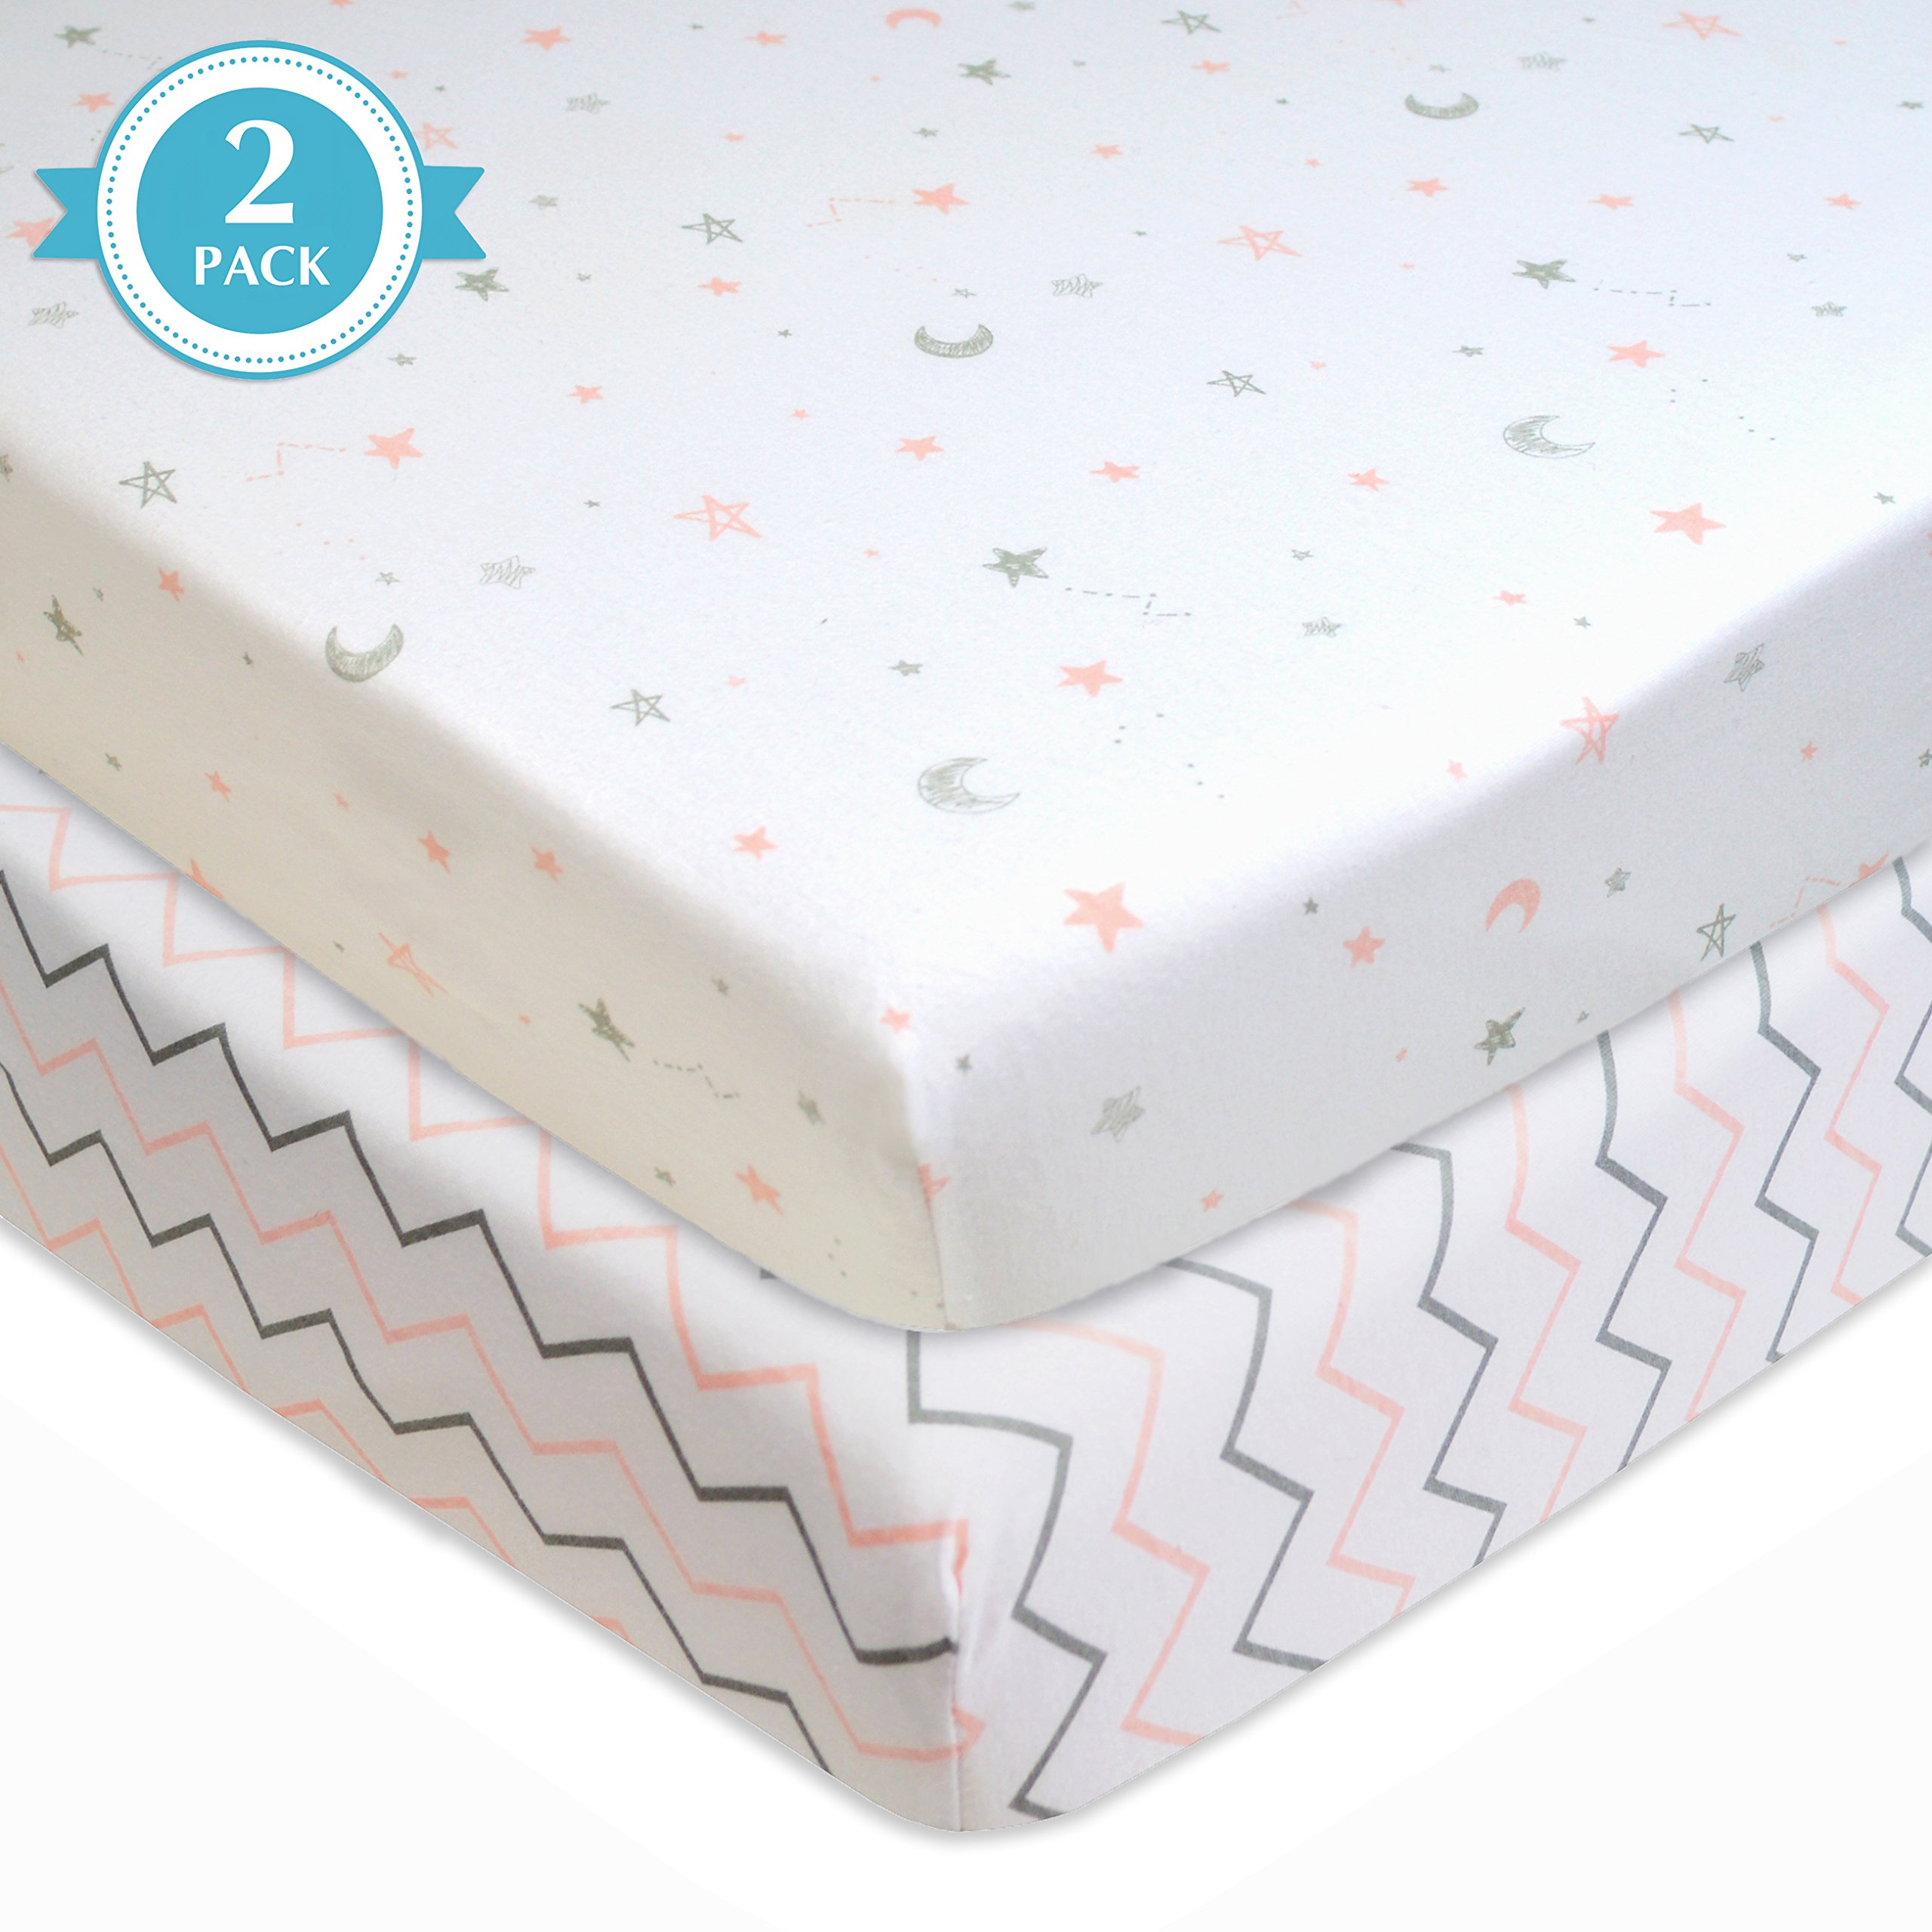 American Baby Company 2 Piece Printed 100% Cotton Jersey Knit Fitted Pack N Play Playard Sheet,Pink Stars/Zigzag